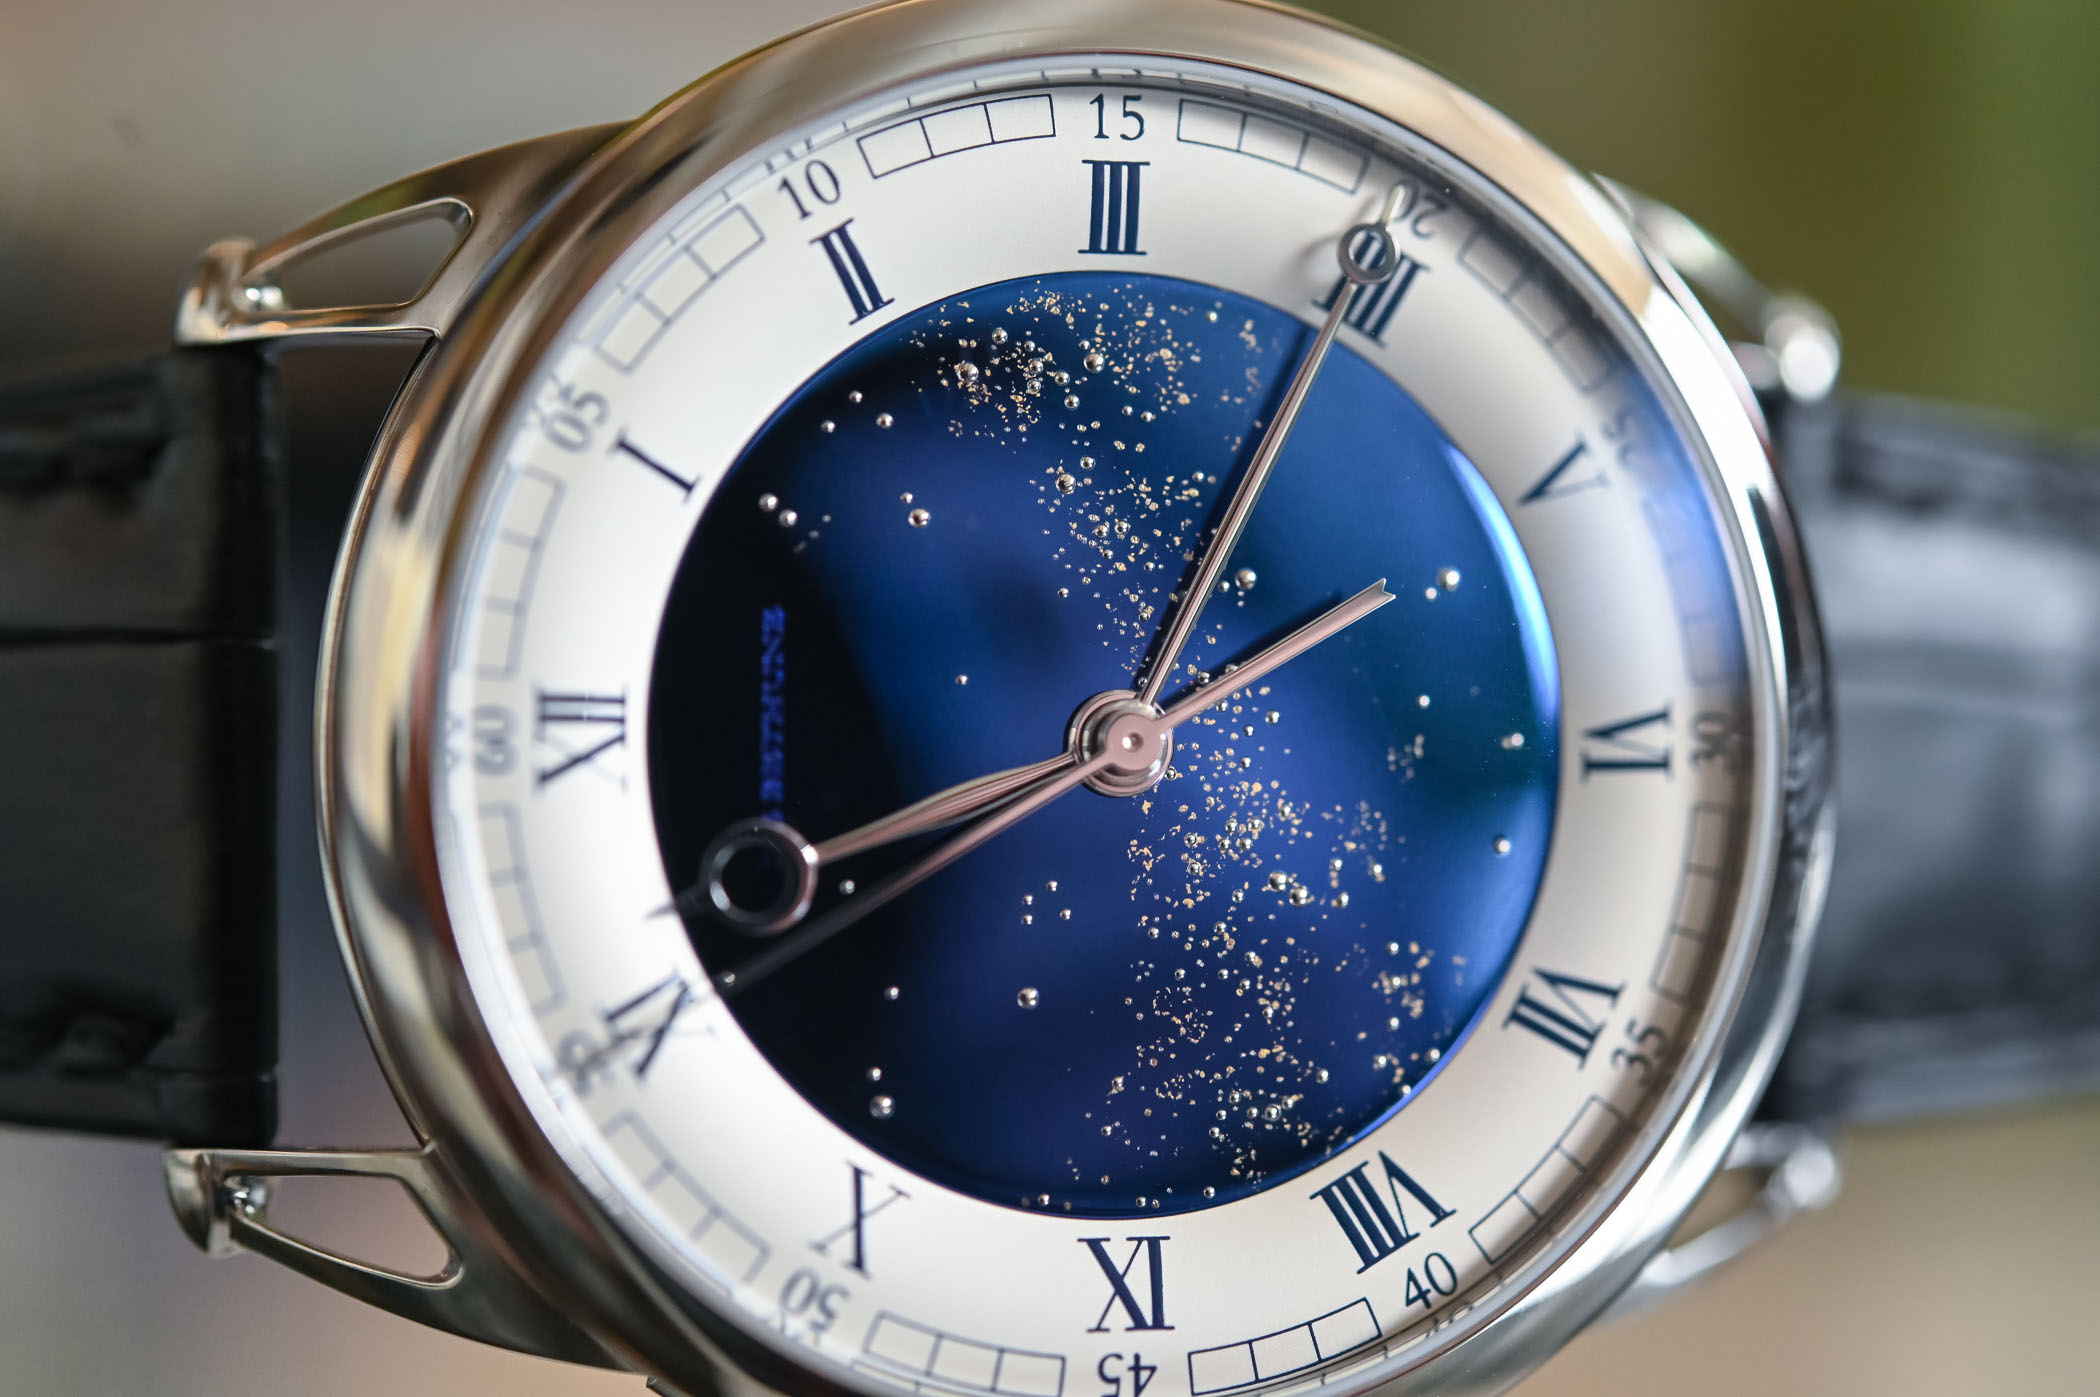 De Bethune DB25 Starry Varius Chronometre Tourbillon - 5